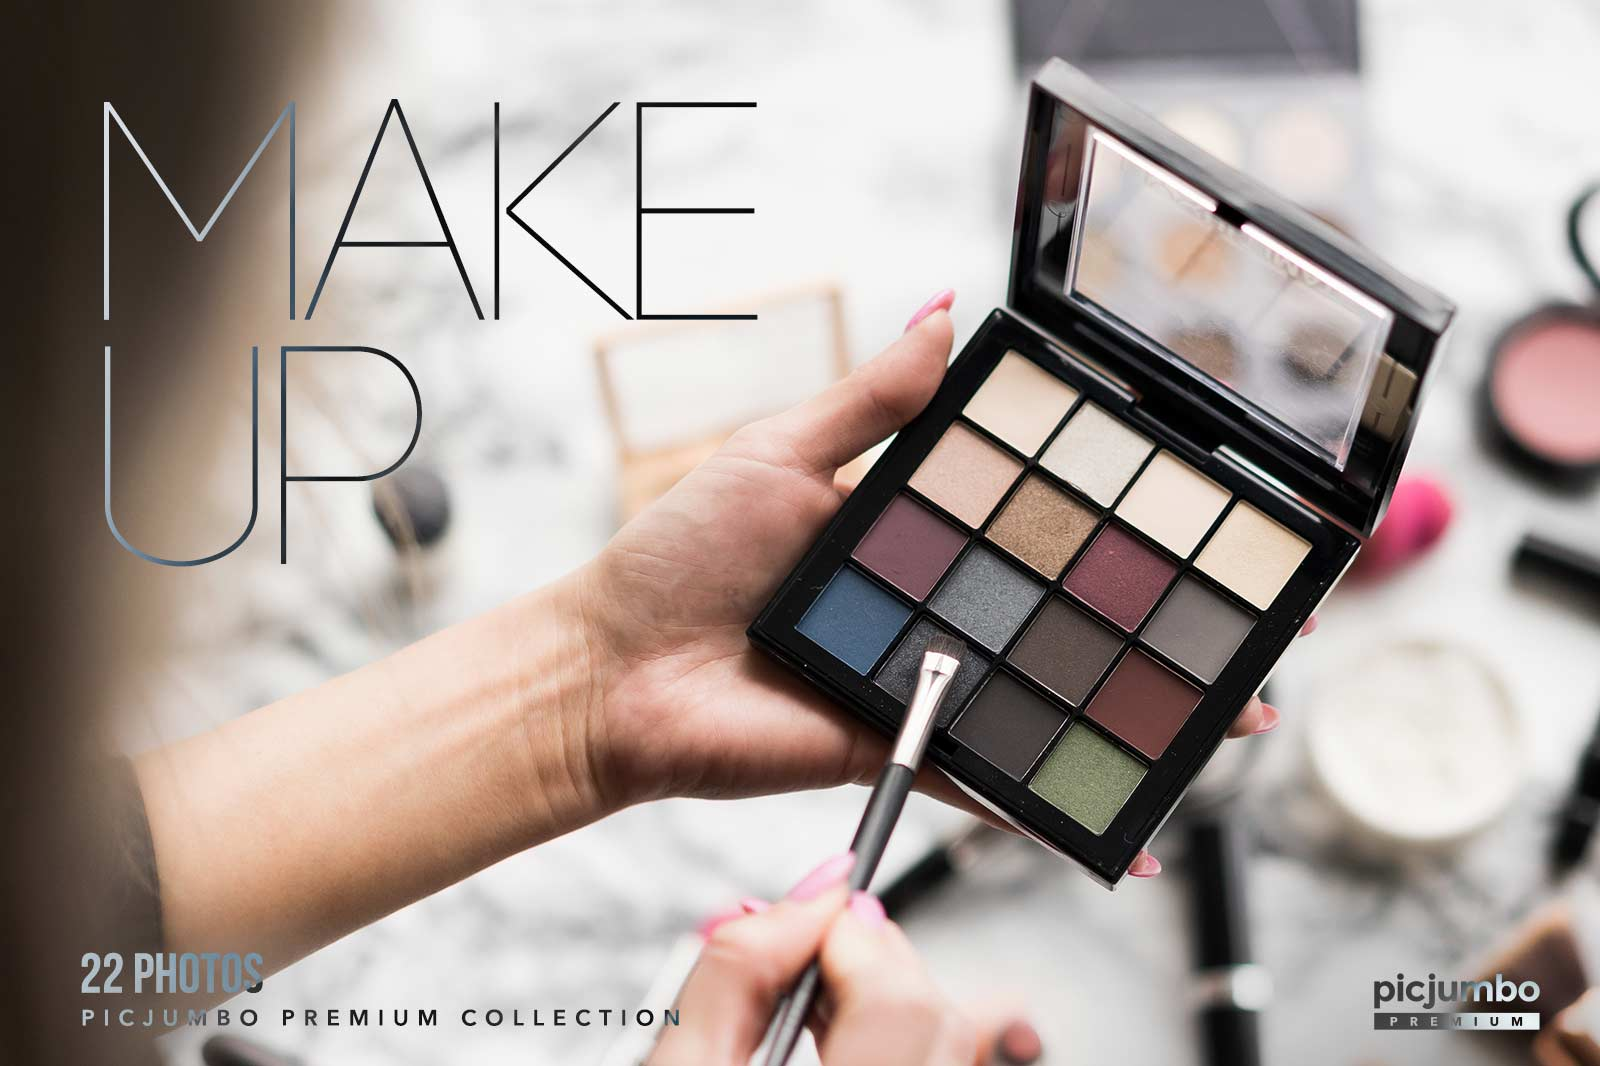 Makeup — get it now in picjumbo PREMIUM!